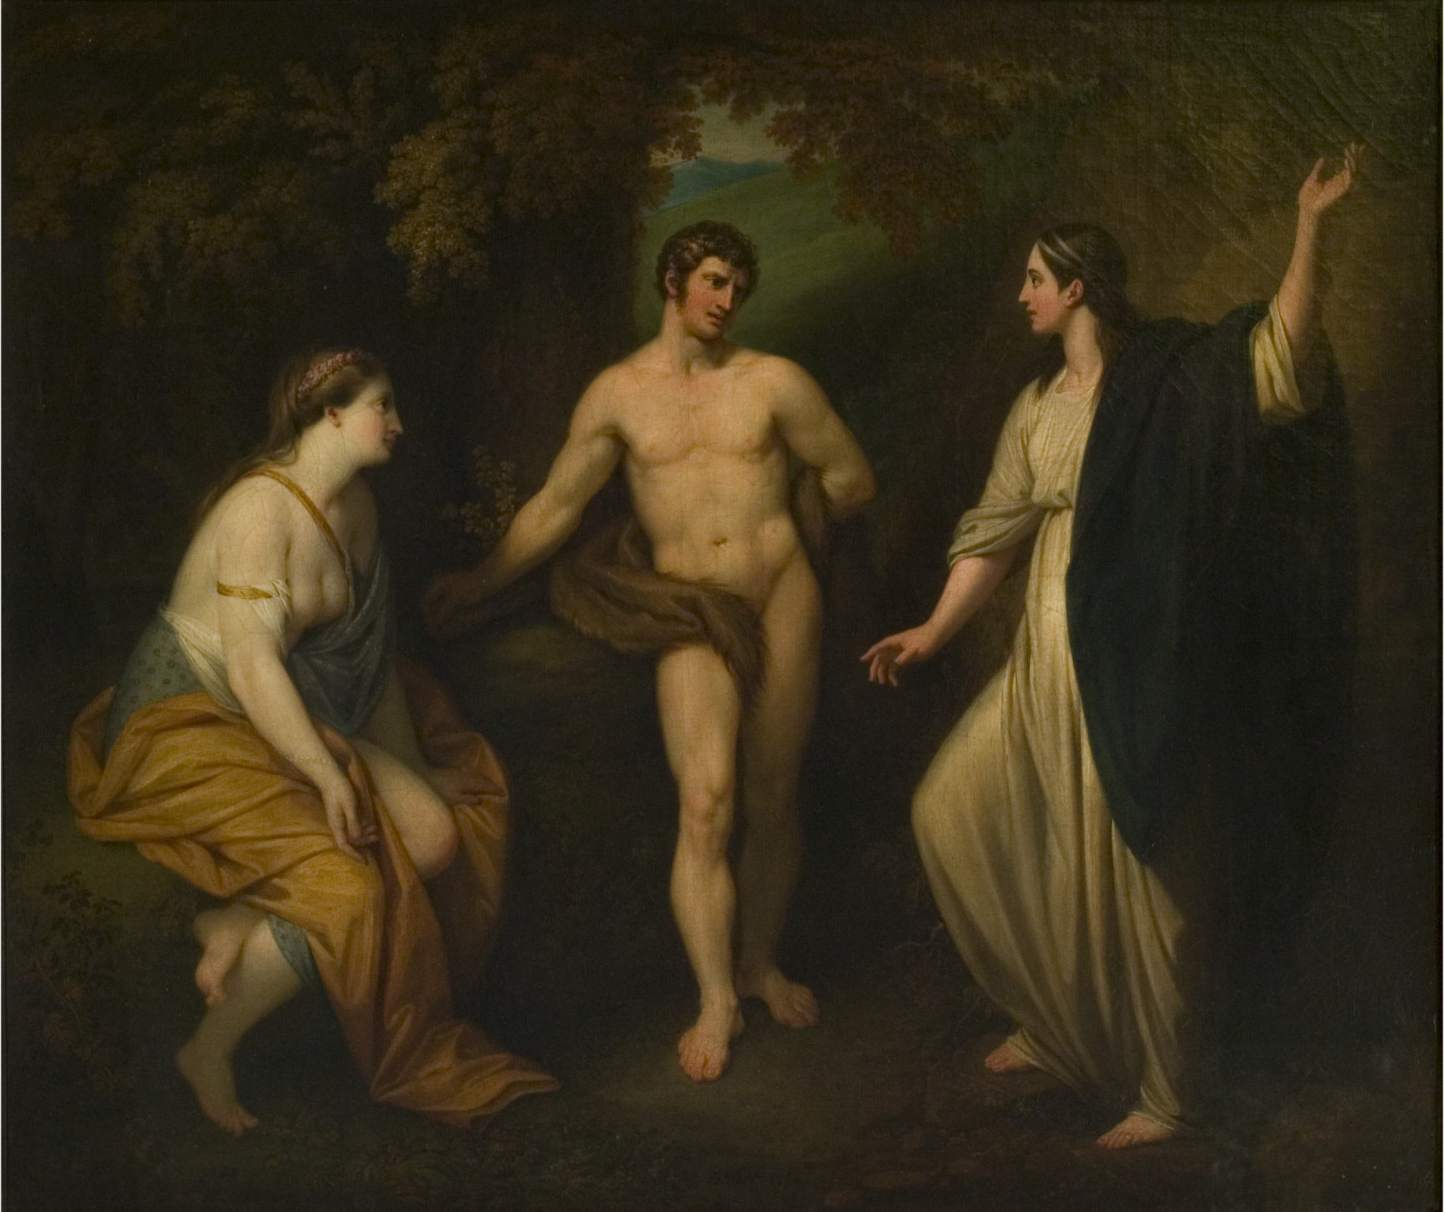 Benjamin West - Choice of Hercules between Virtue and Pleasure